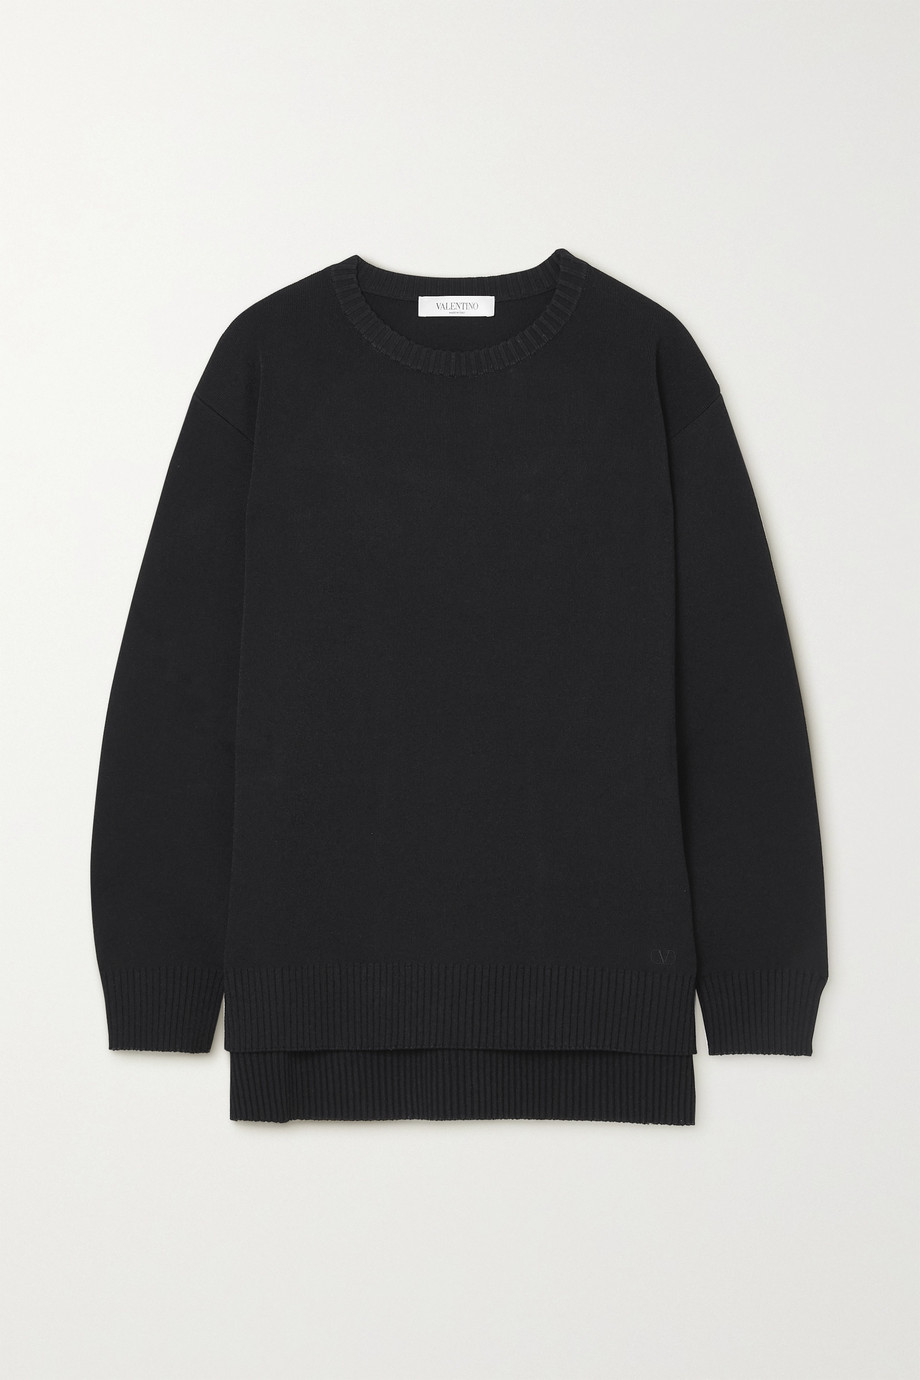 Valentino Oversized knitted sweater